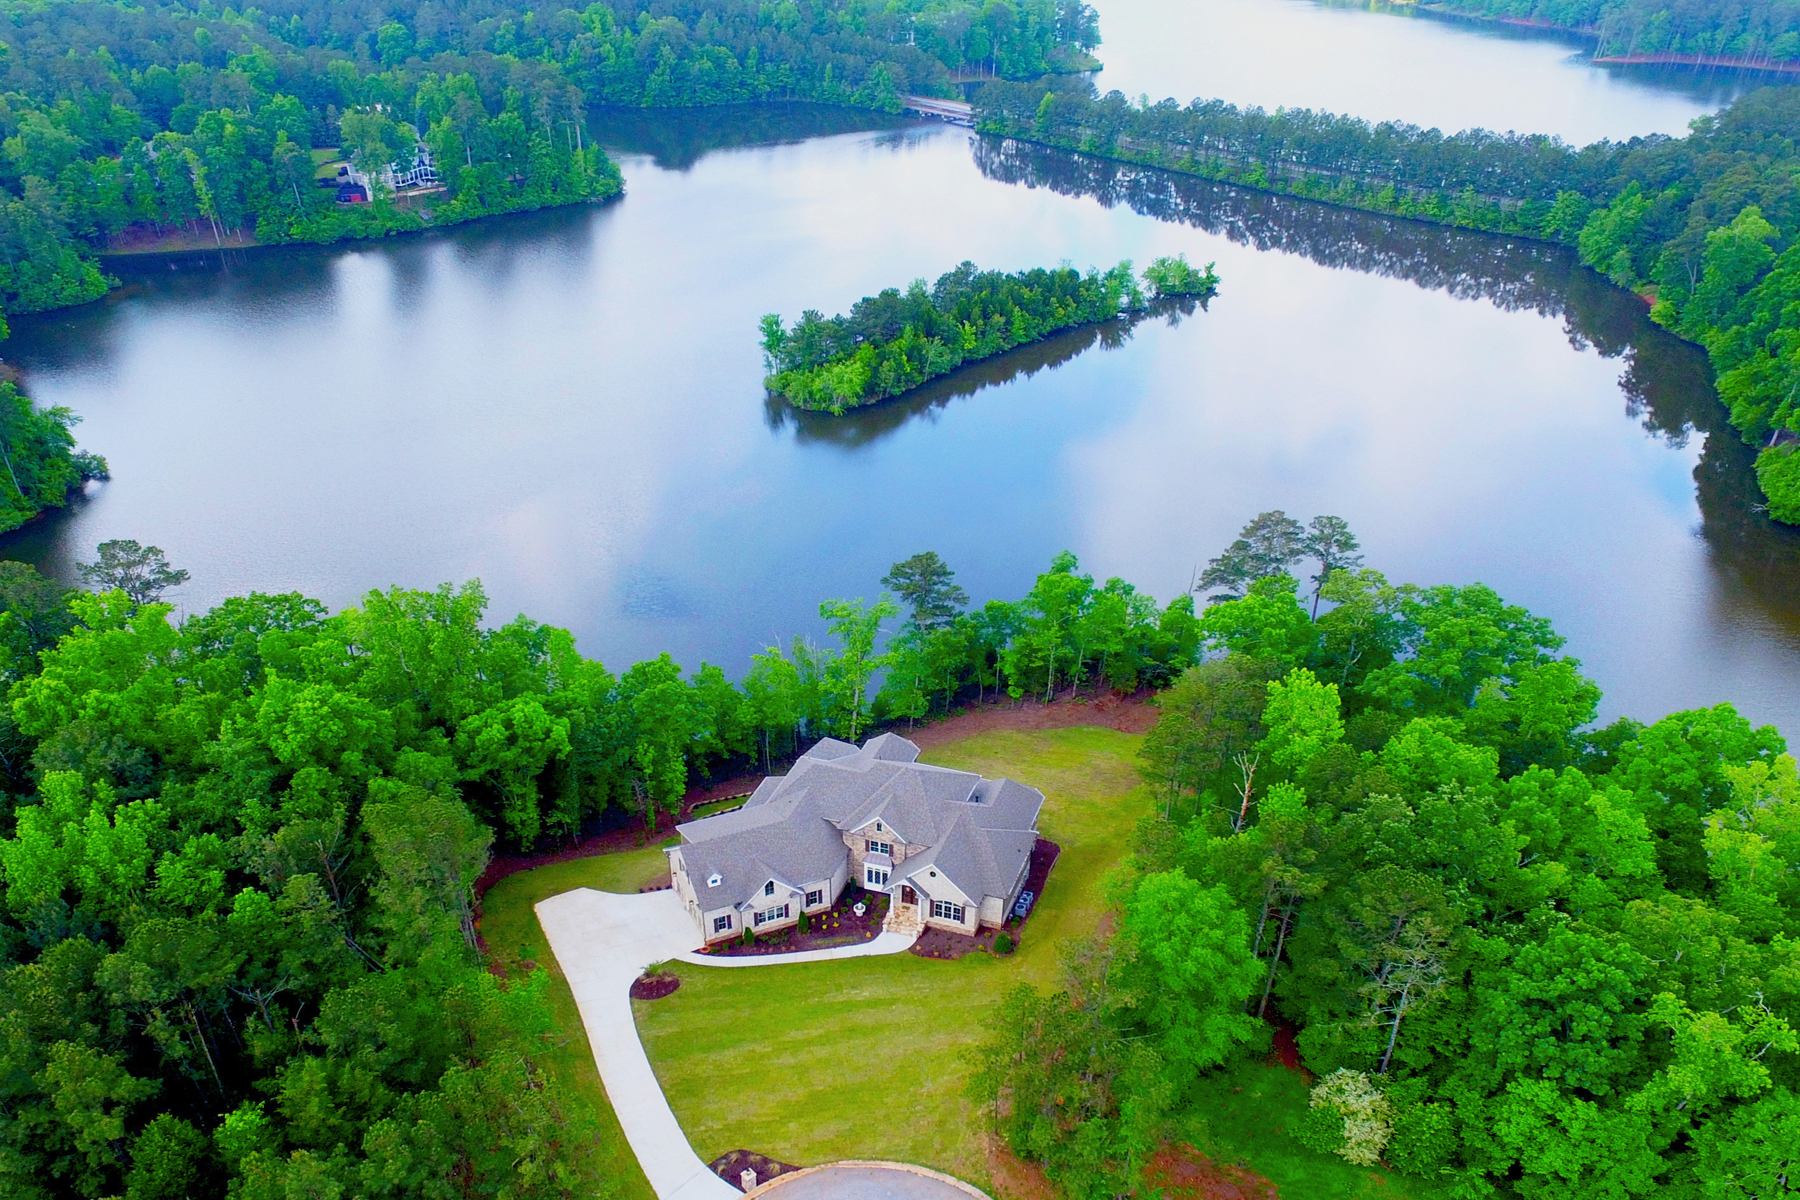 Single Family Home for Active at Lake Front Masterpiece In Peachtree City 83 Smokerise Point Peachtree City, Georgia 30269 United States